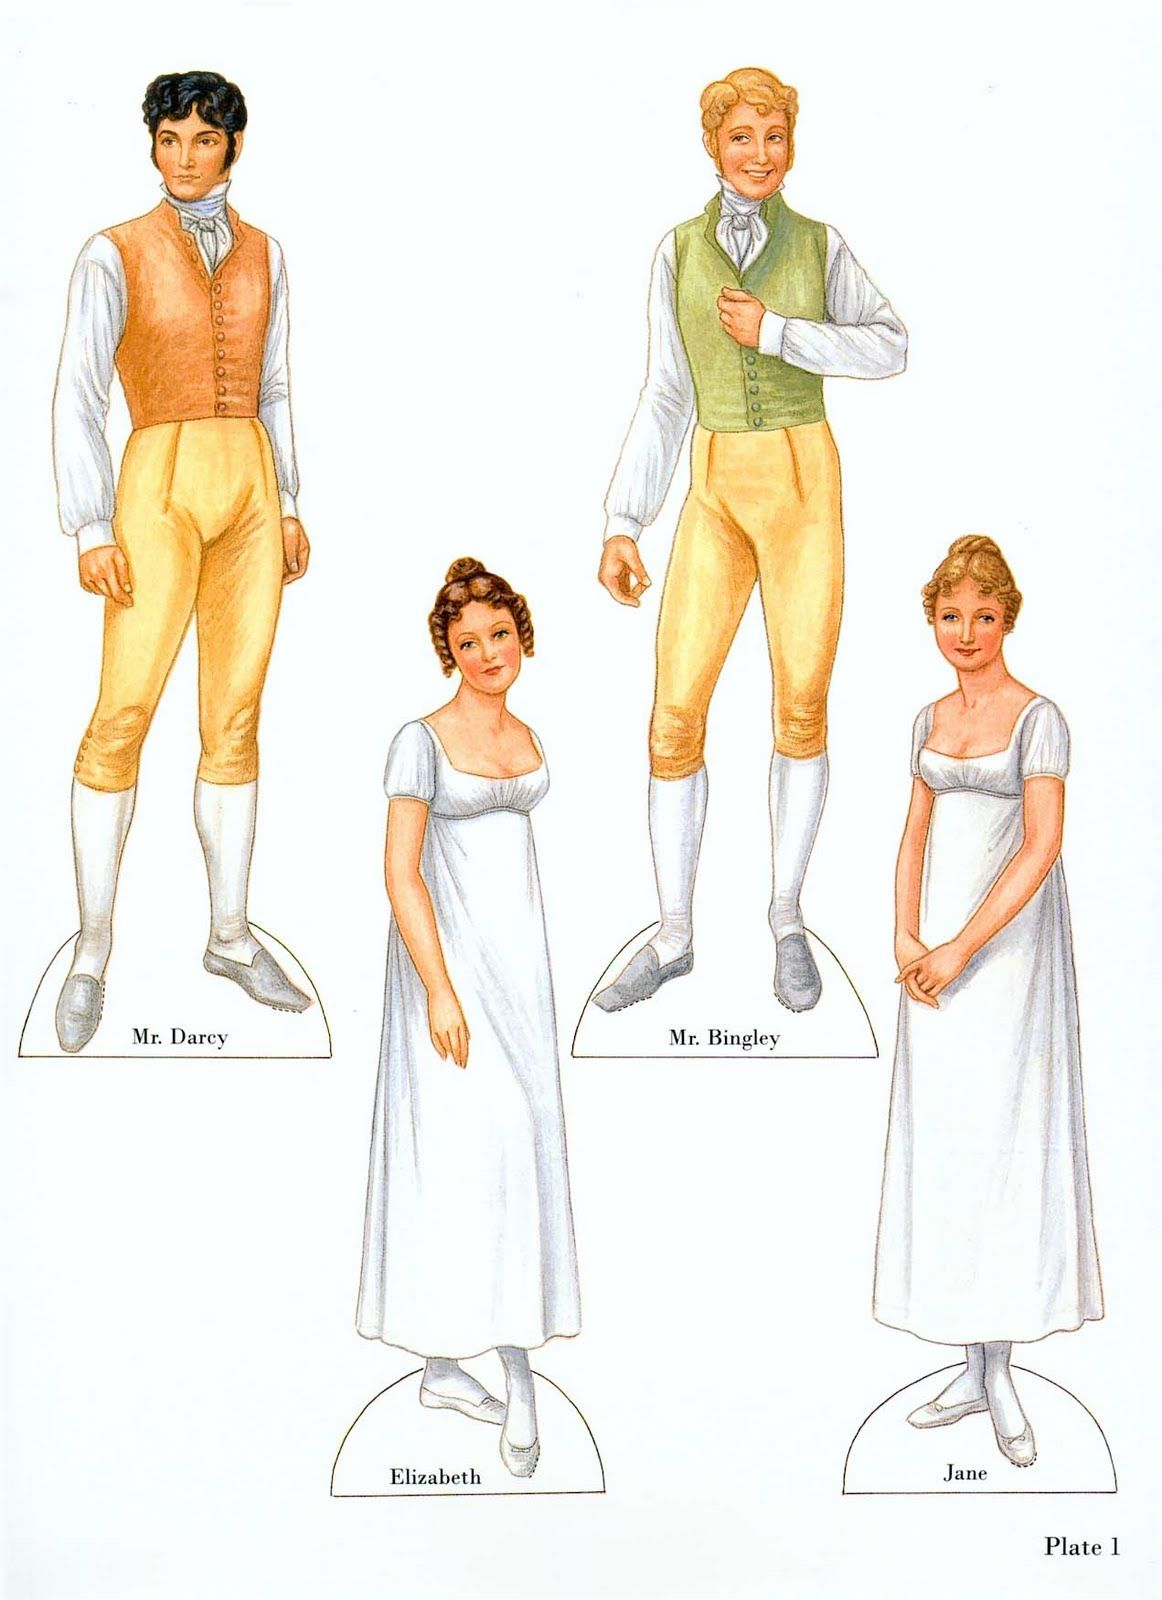 Pin By Emerald On Paper Dolls Paper Dolls Pride And Prejudice Vintage Paper Dolls